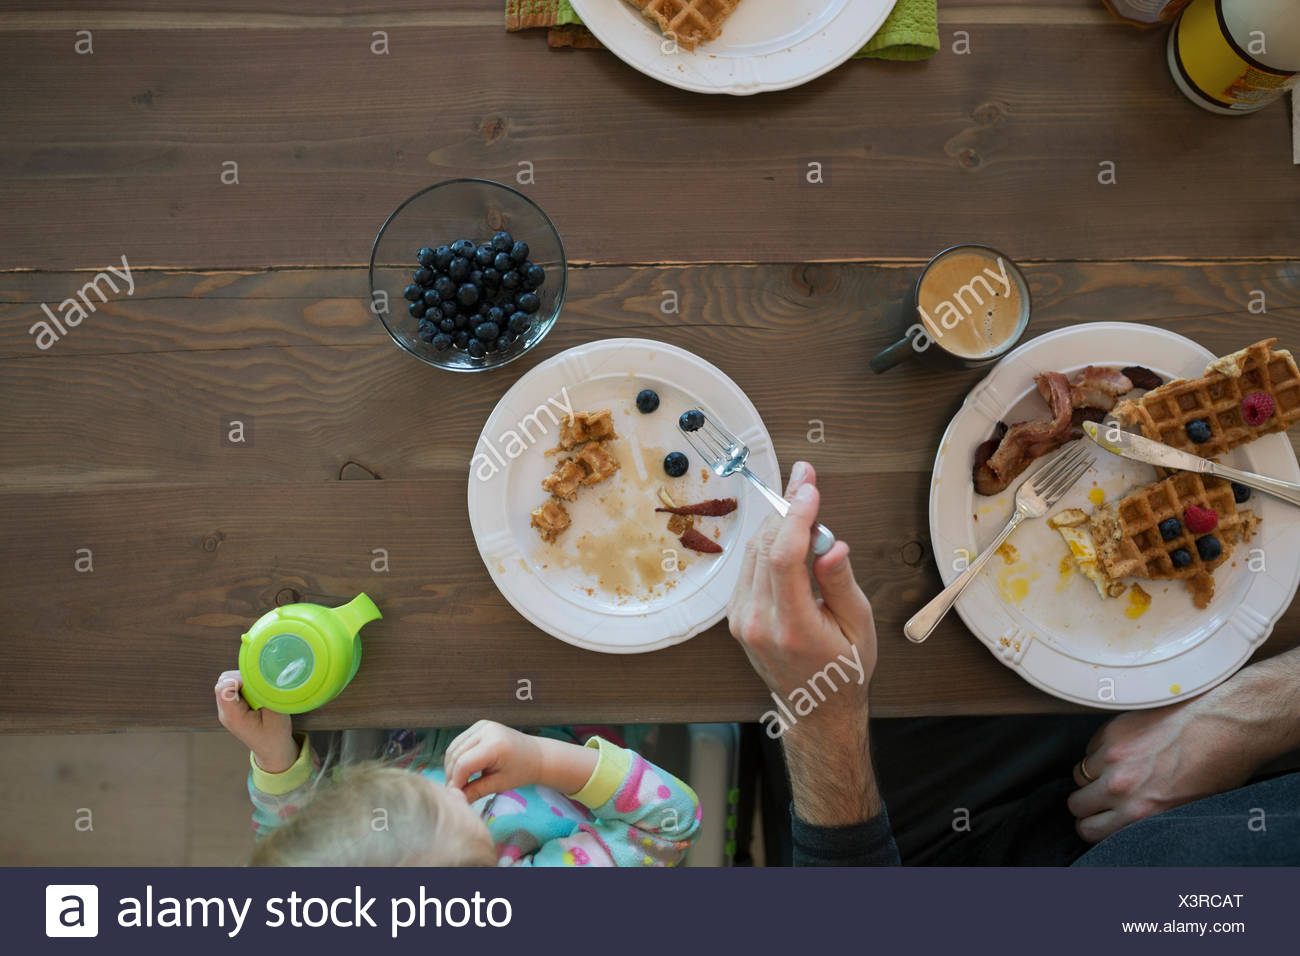 Overhead father and daughter eating waffles breakfast table - Stock Image